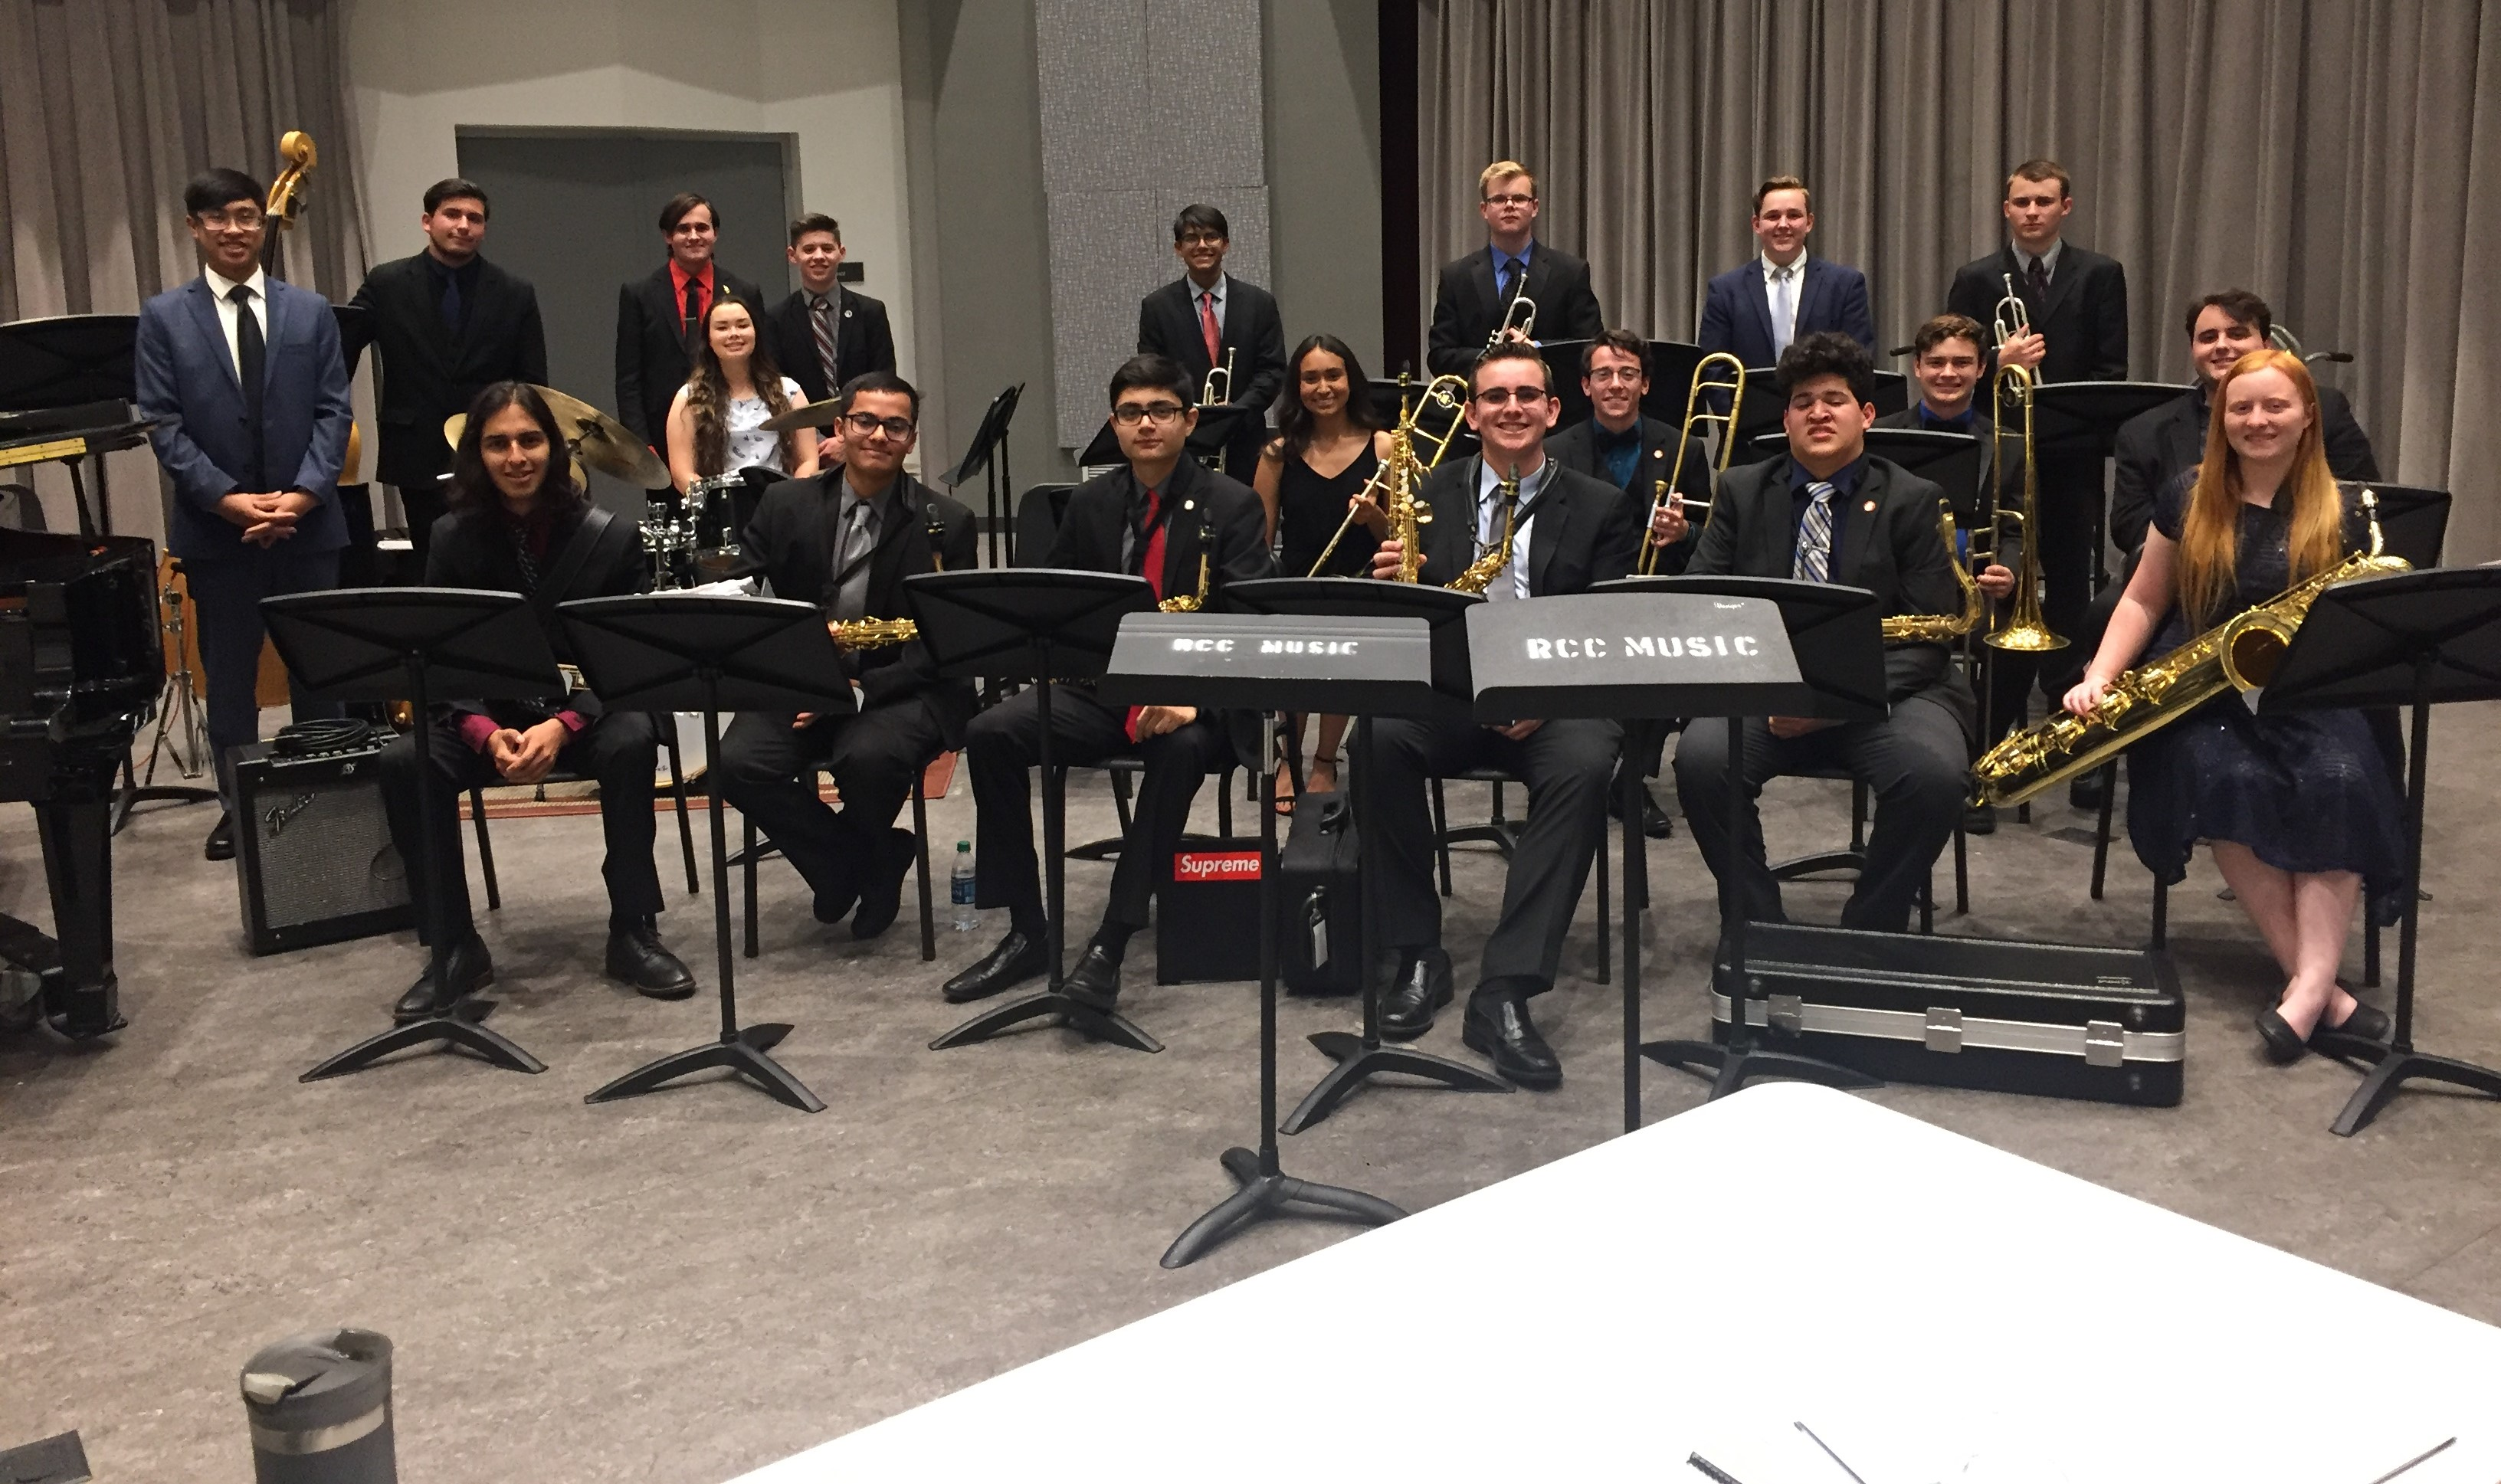 Santiago High School Jazz Ensemble to perform at 2020 State Music Education Conference